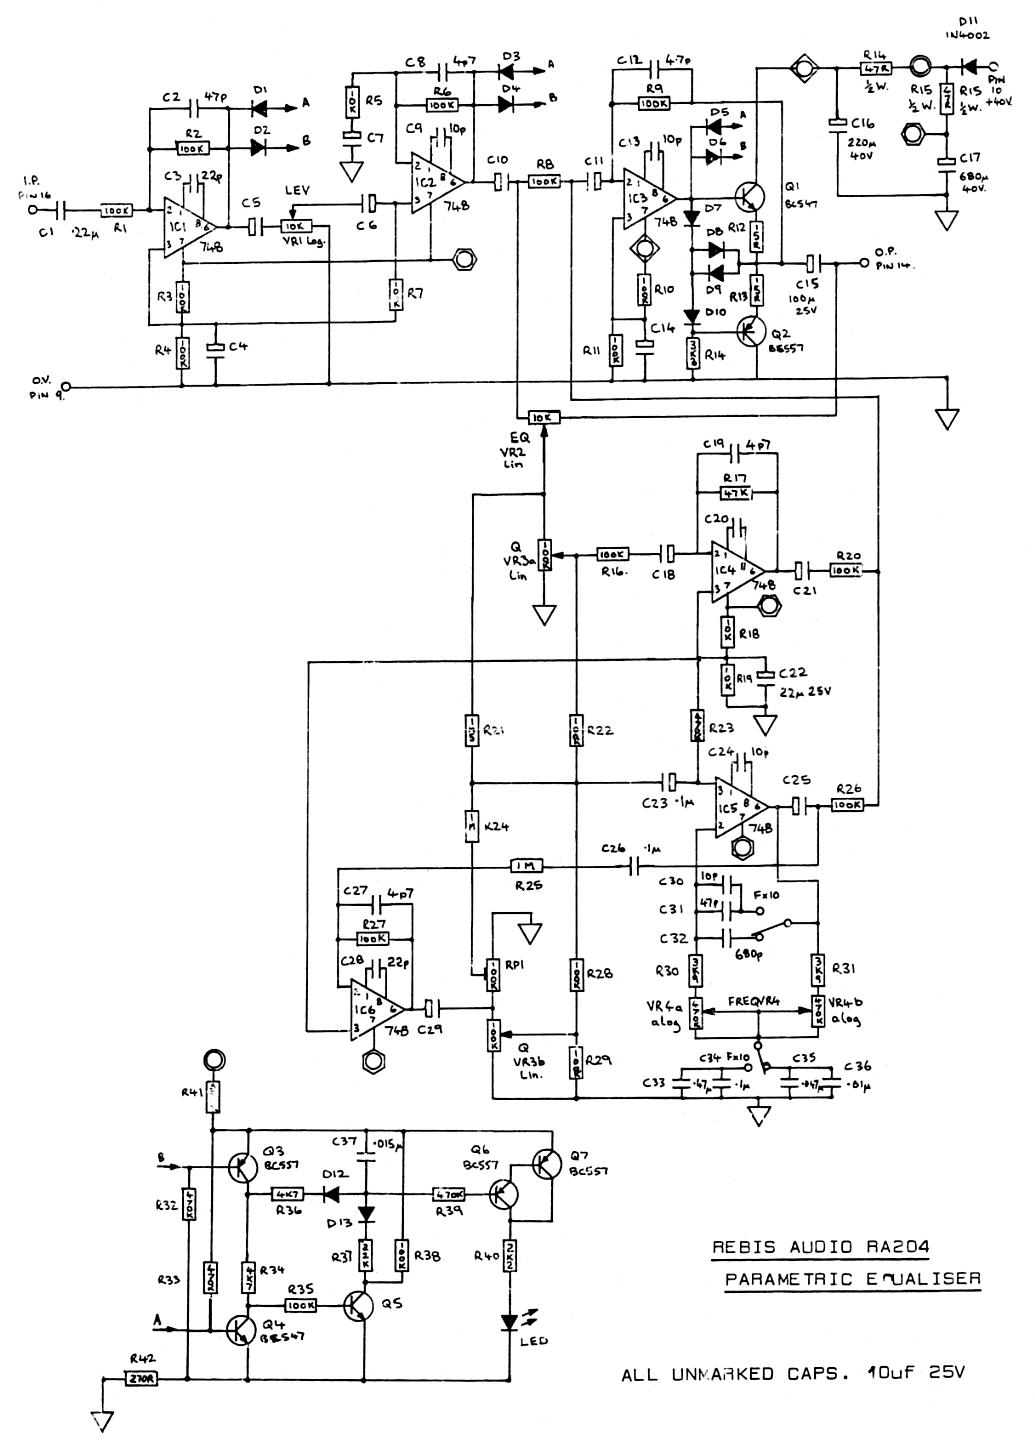 oliver tractor wiring harness with Fordson Dexta Wiring Diagram on Simplicity Mower Deck Diagram likewise Double Neck Guitar Wiring Diagram likewise John Deere Tractor 2155 Wiring Diagram in addition Wiring Diagram For Tractor Lights together with Oliver 60 Wiring Diagram.